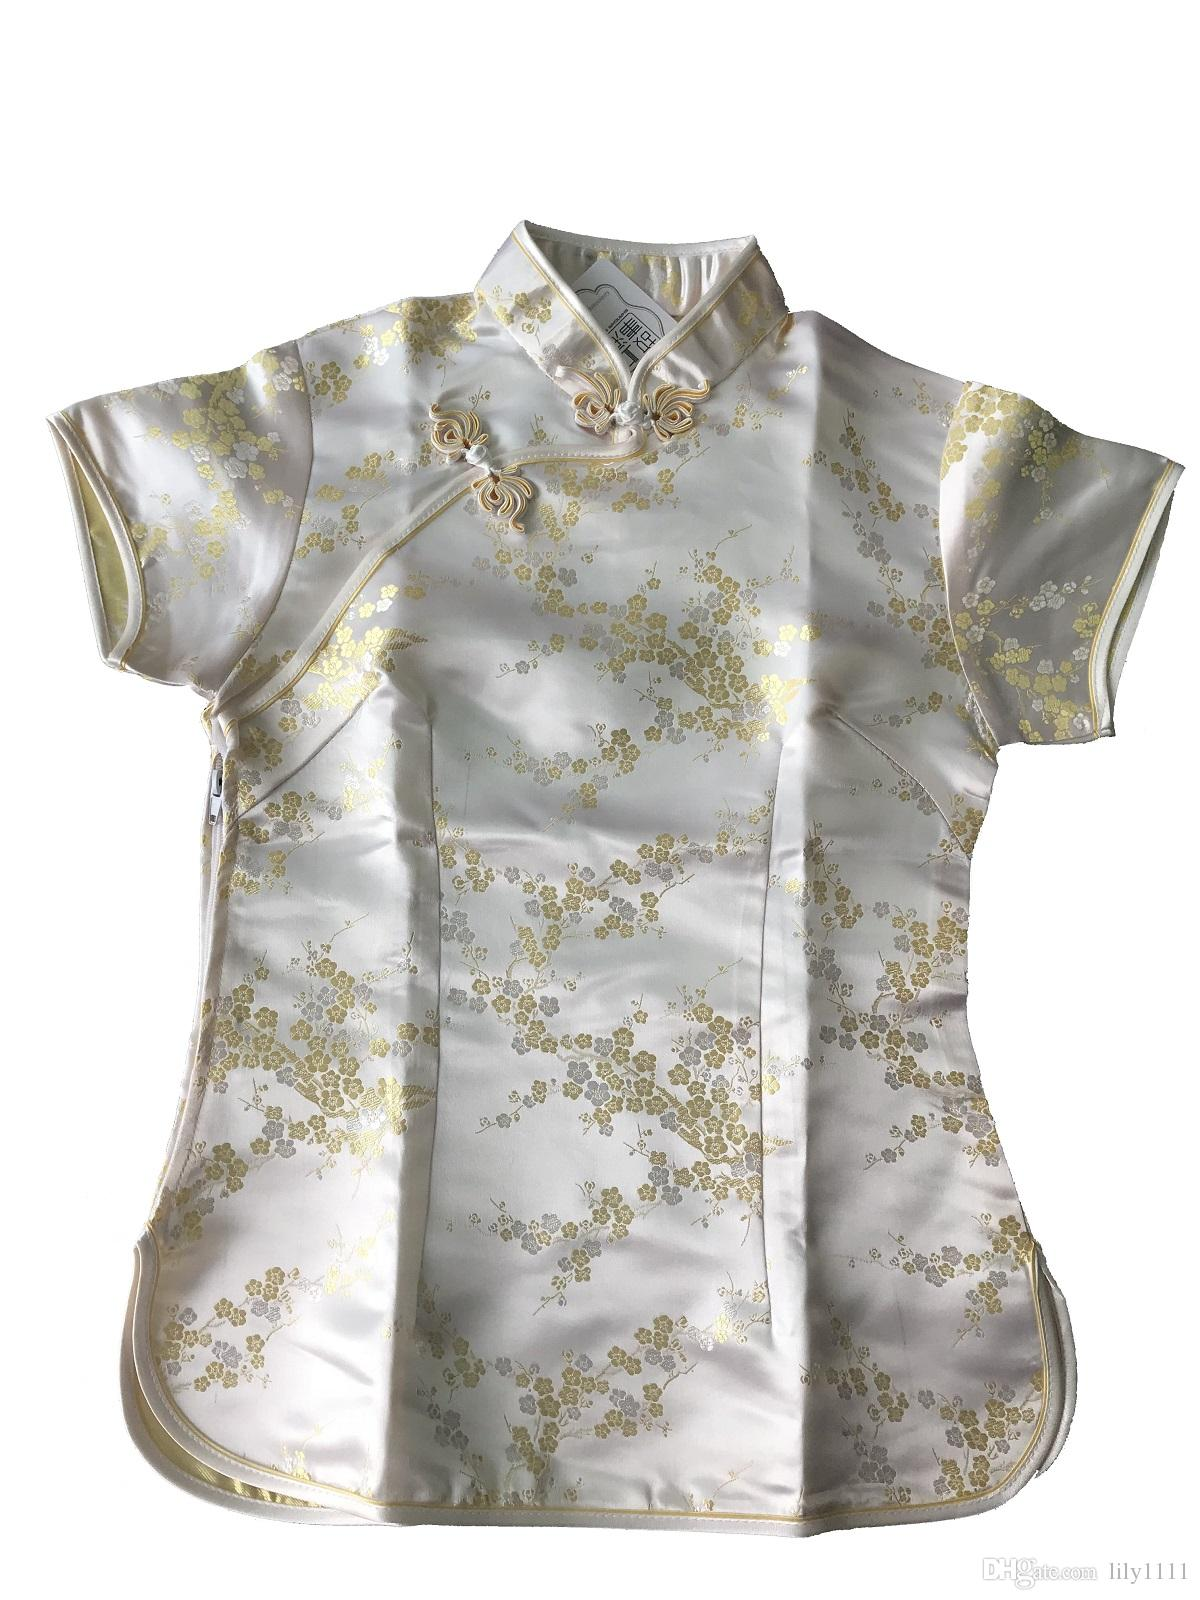 Shanghai Story New Arrival fashion cheongsam top traditional Chinese Women's Silk/Satin Top china floral print blouse Gold top A0024